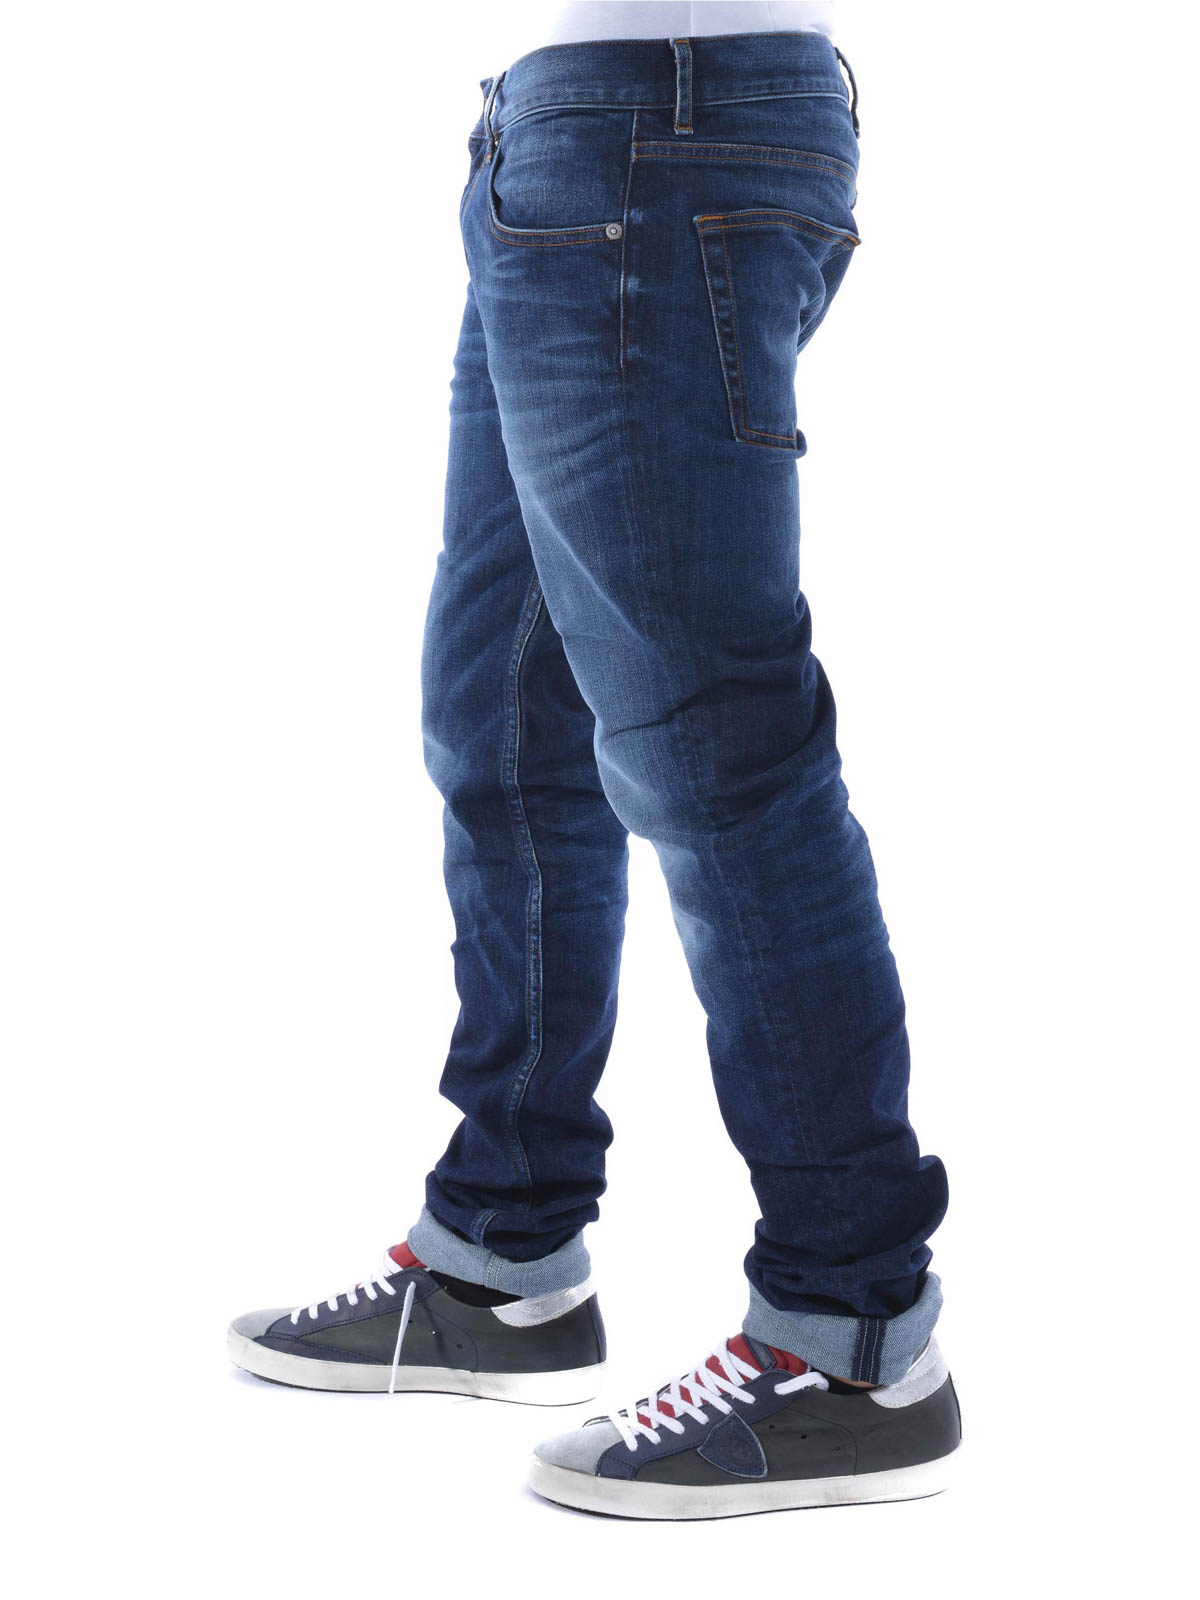 REAL skinny jeans by Stone Island - skinny jeans | iKRIX